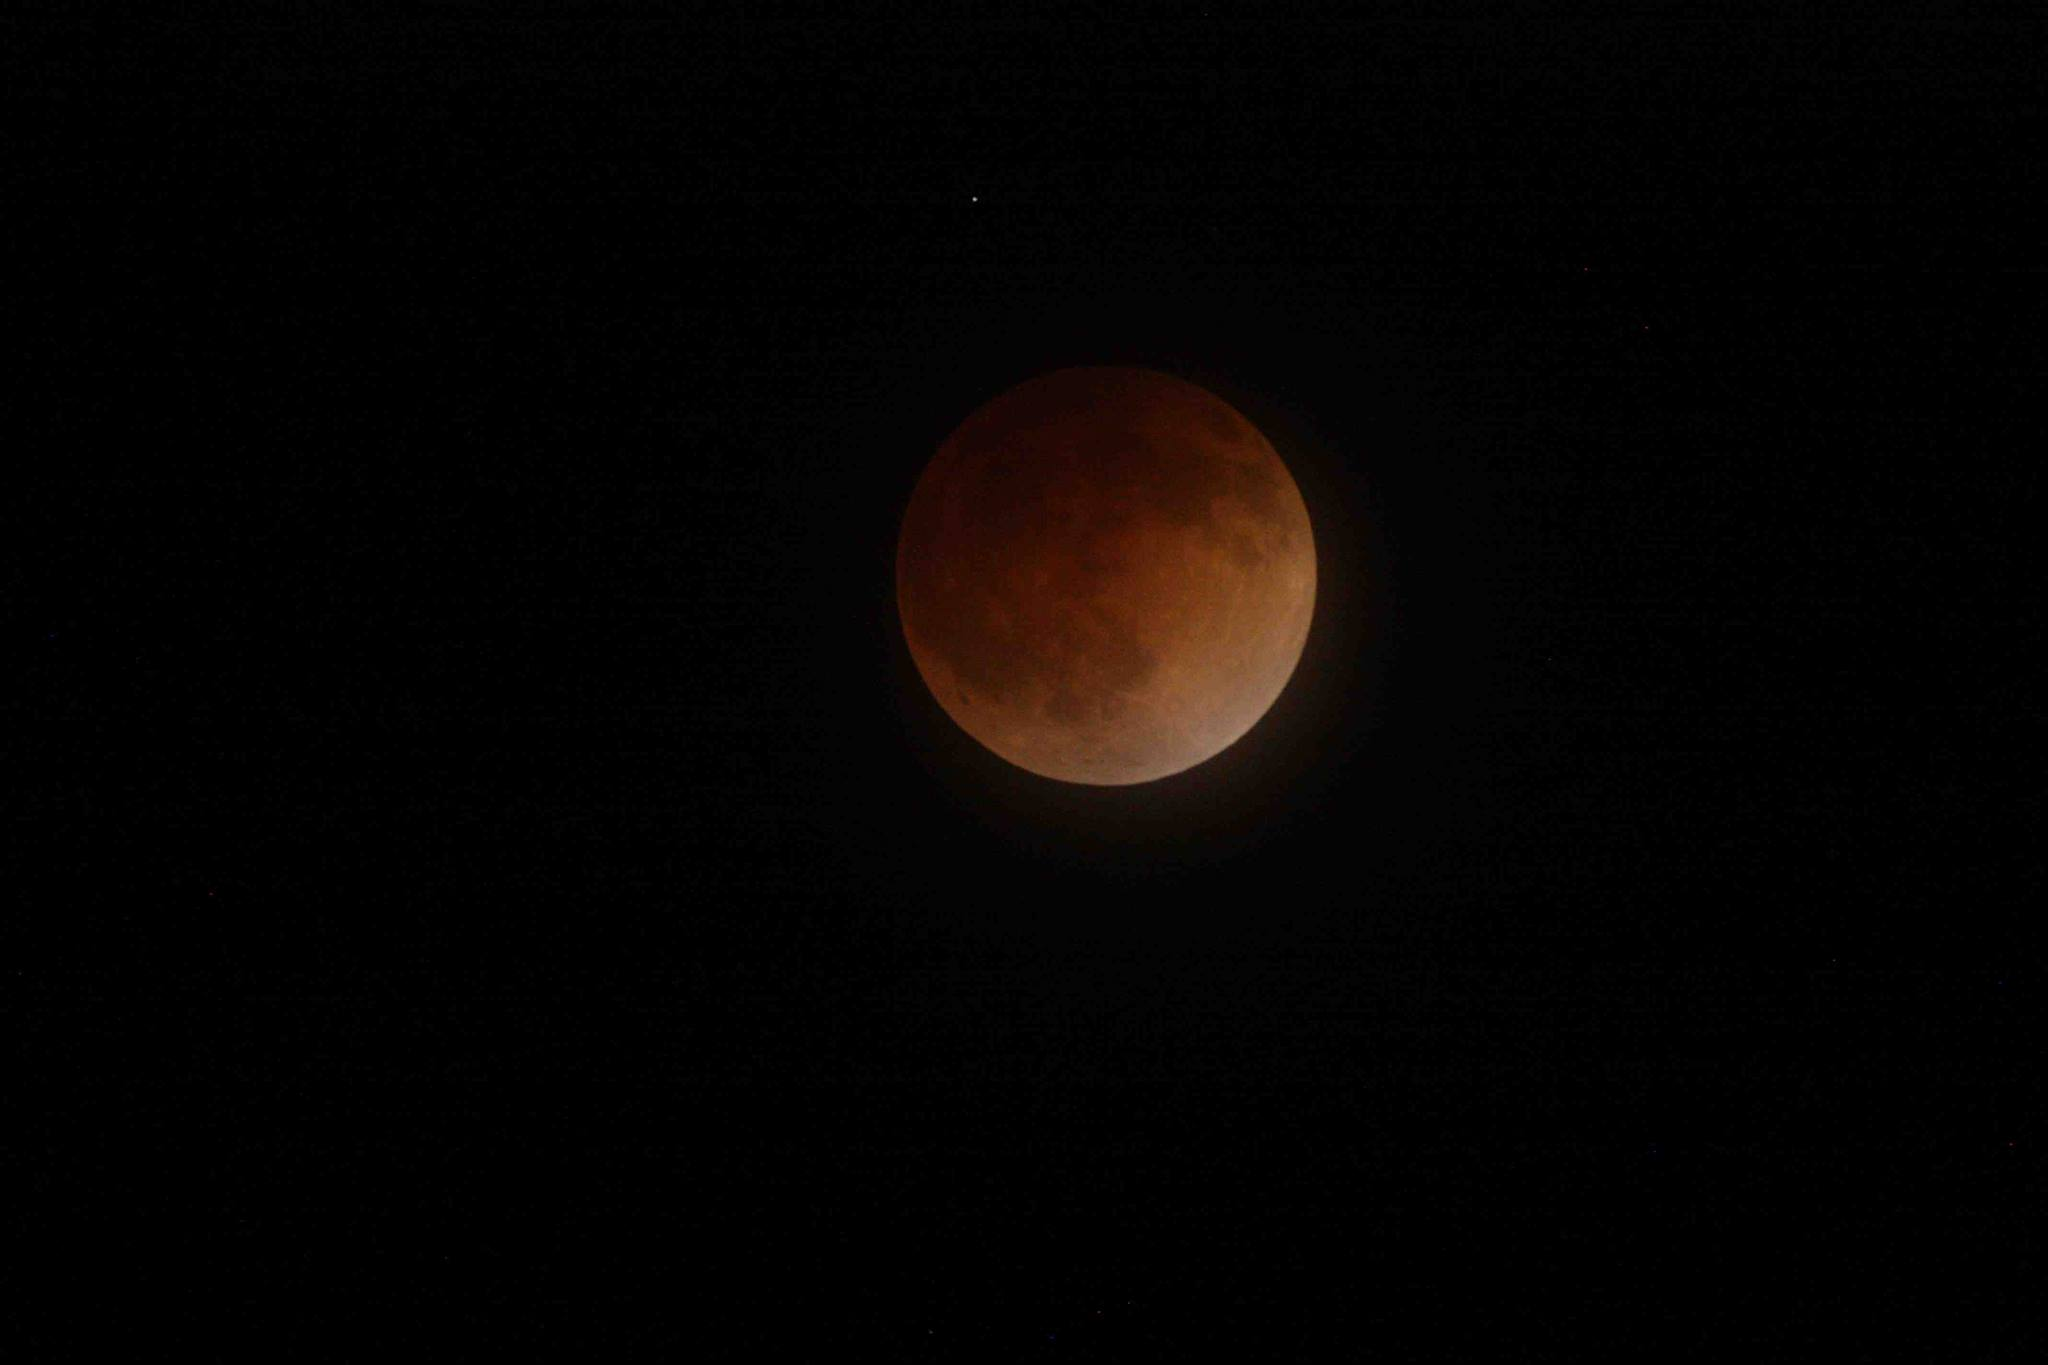 nasa live lunar eclipse - photo #21